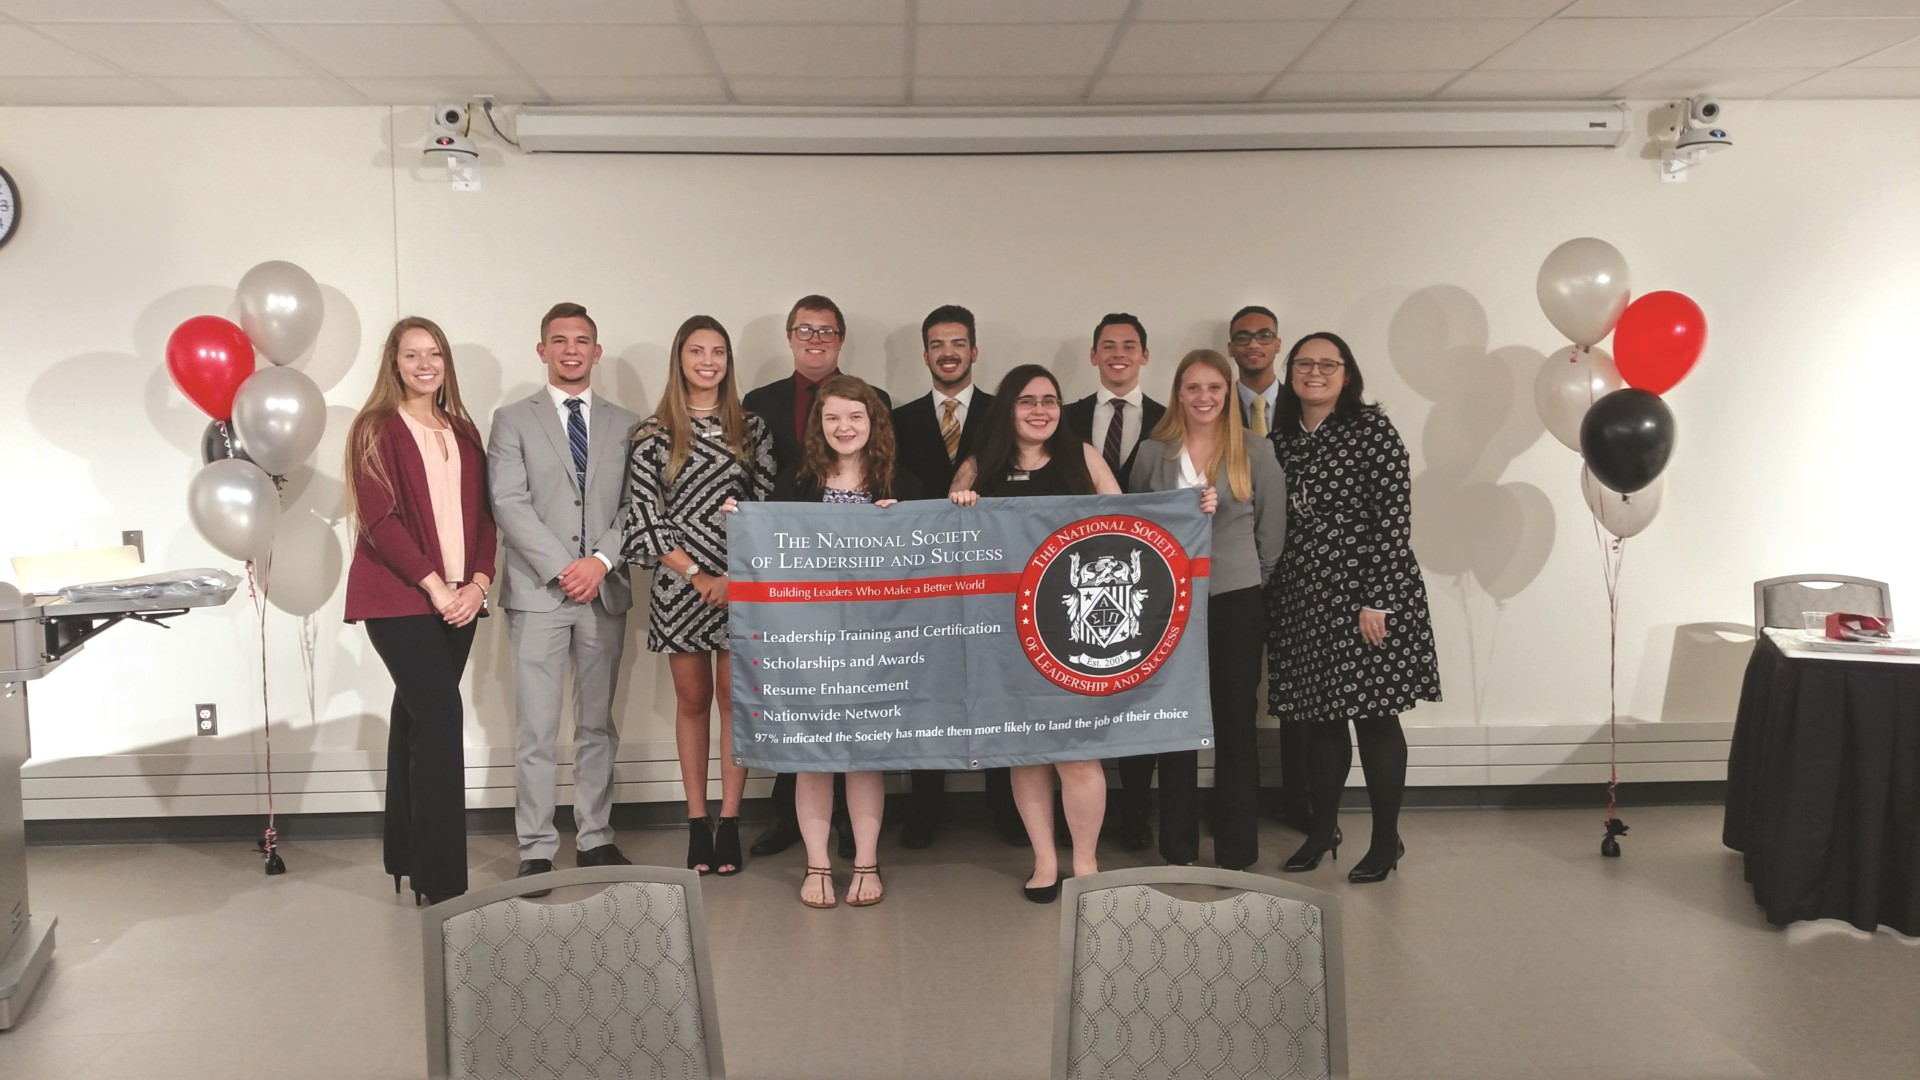 The 2018-19 executive board members have helped make the new NSLS chapter one of the largest student organizations at Northwood.